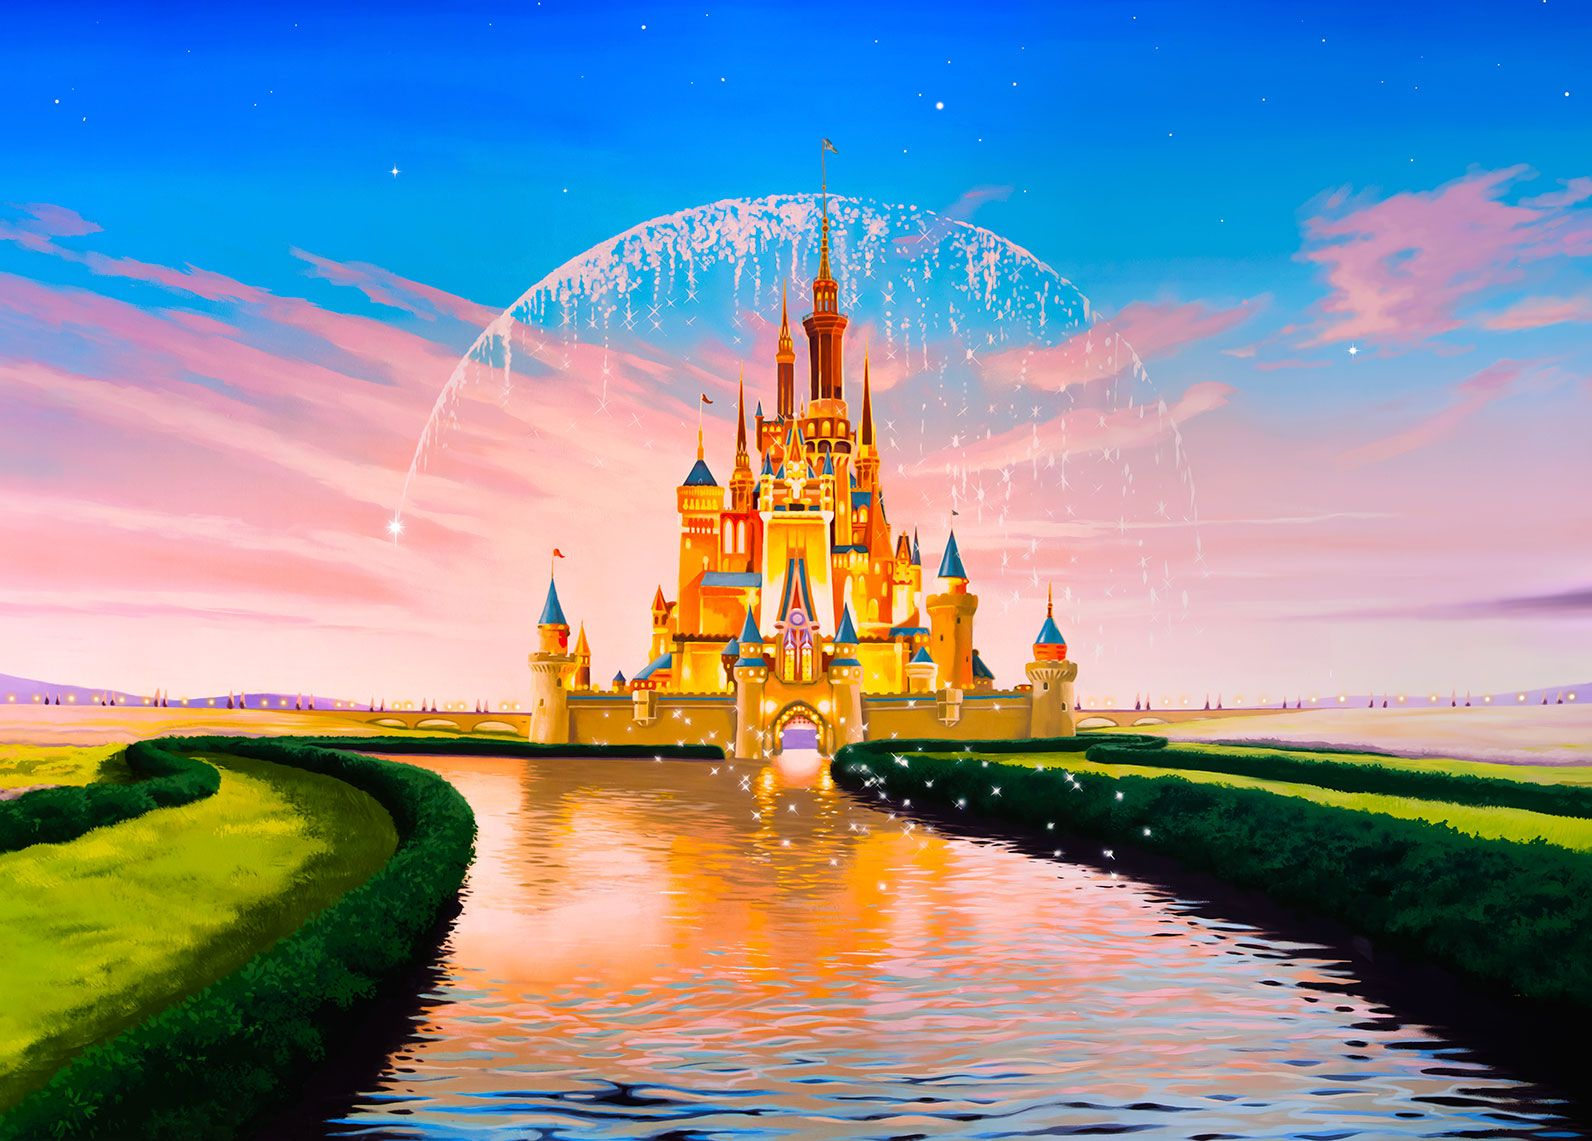 Pin By Jennifer Jaeger On Disney Disney Desktop Wallpaper Disney Wallpaper Disney Background